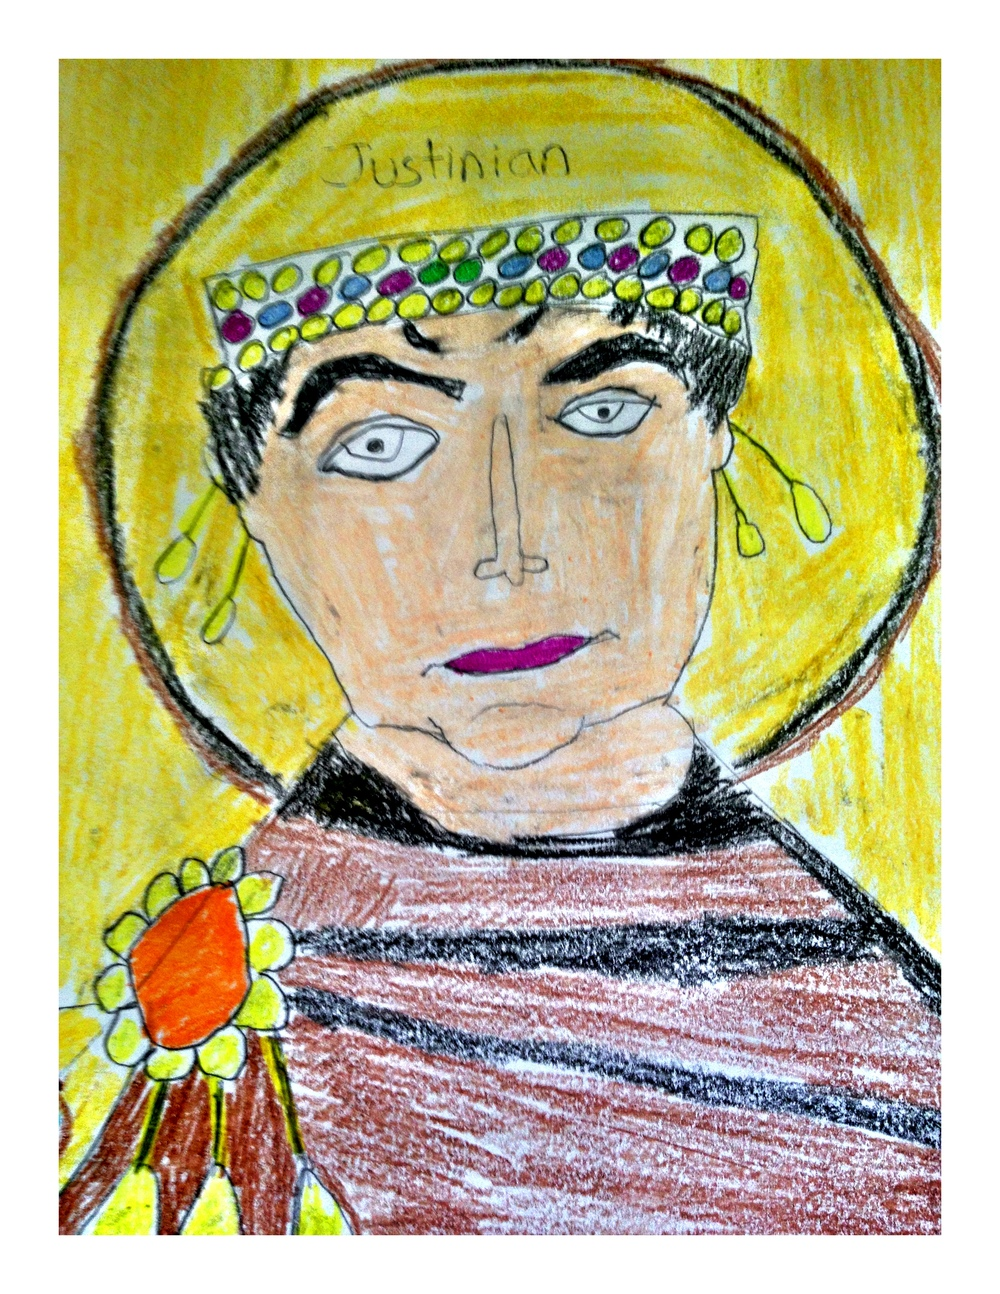 Justinian by 7th Grade Art History Student